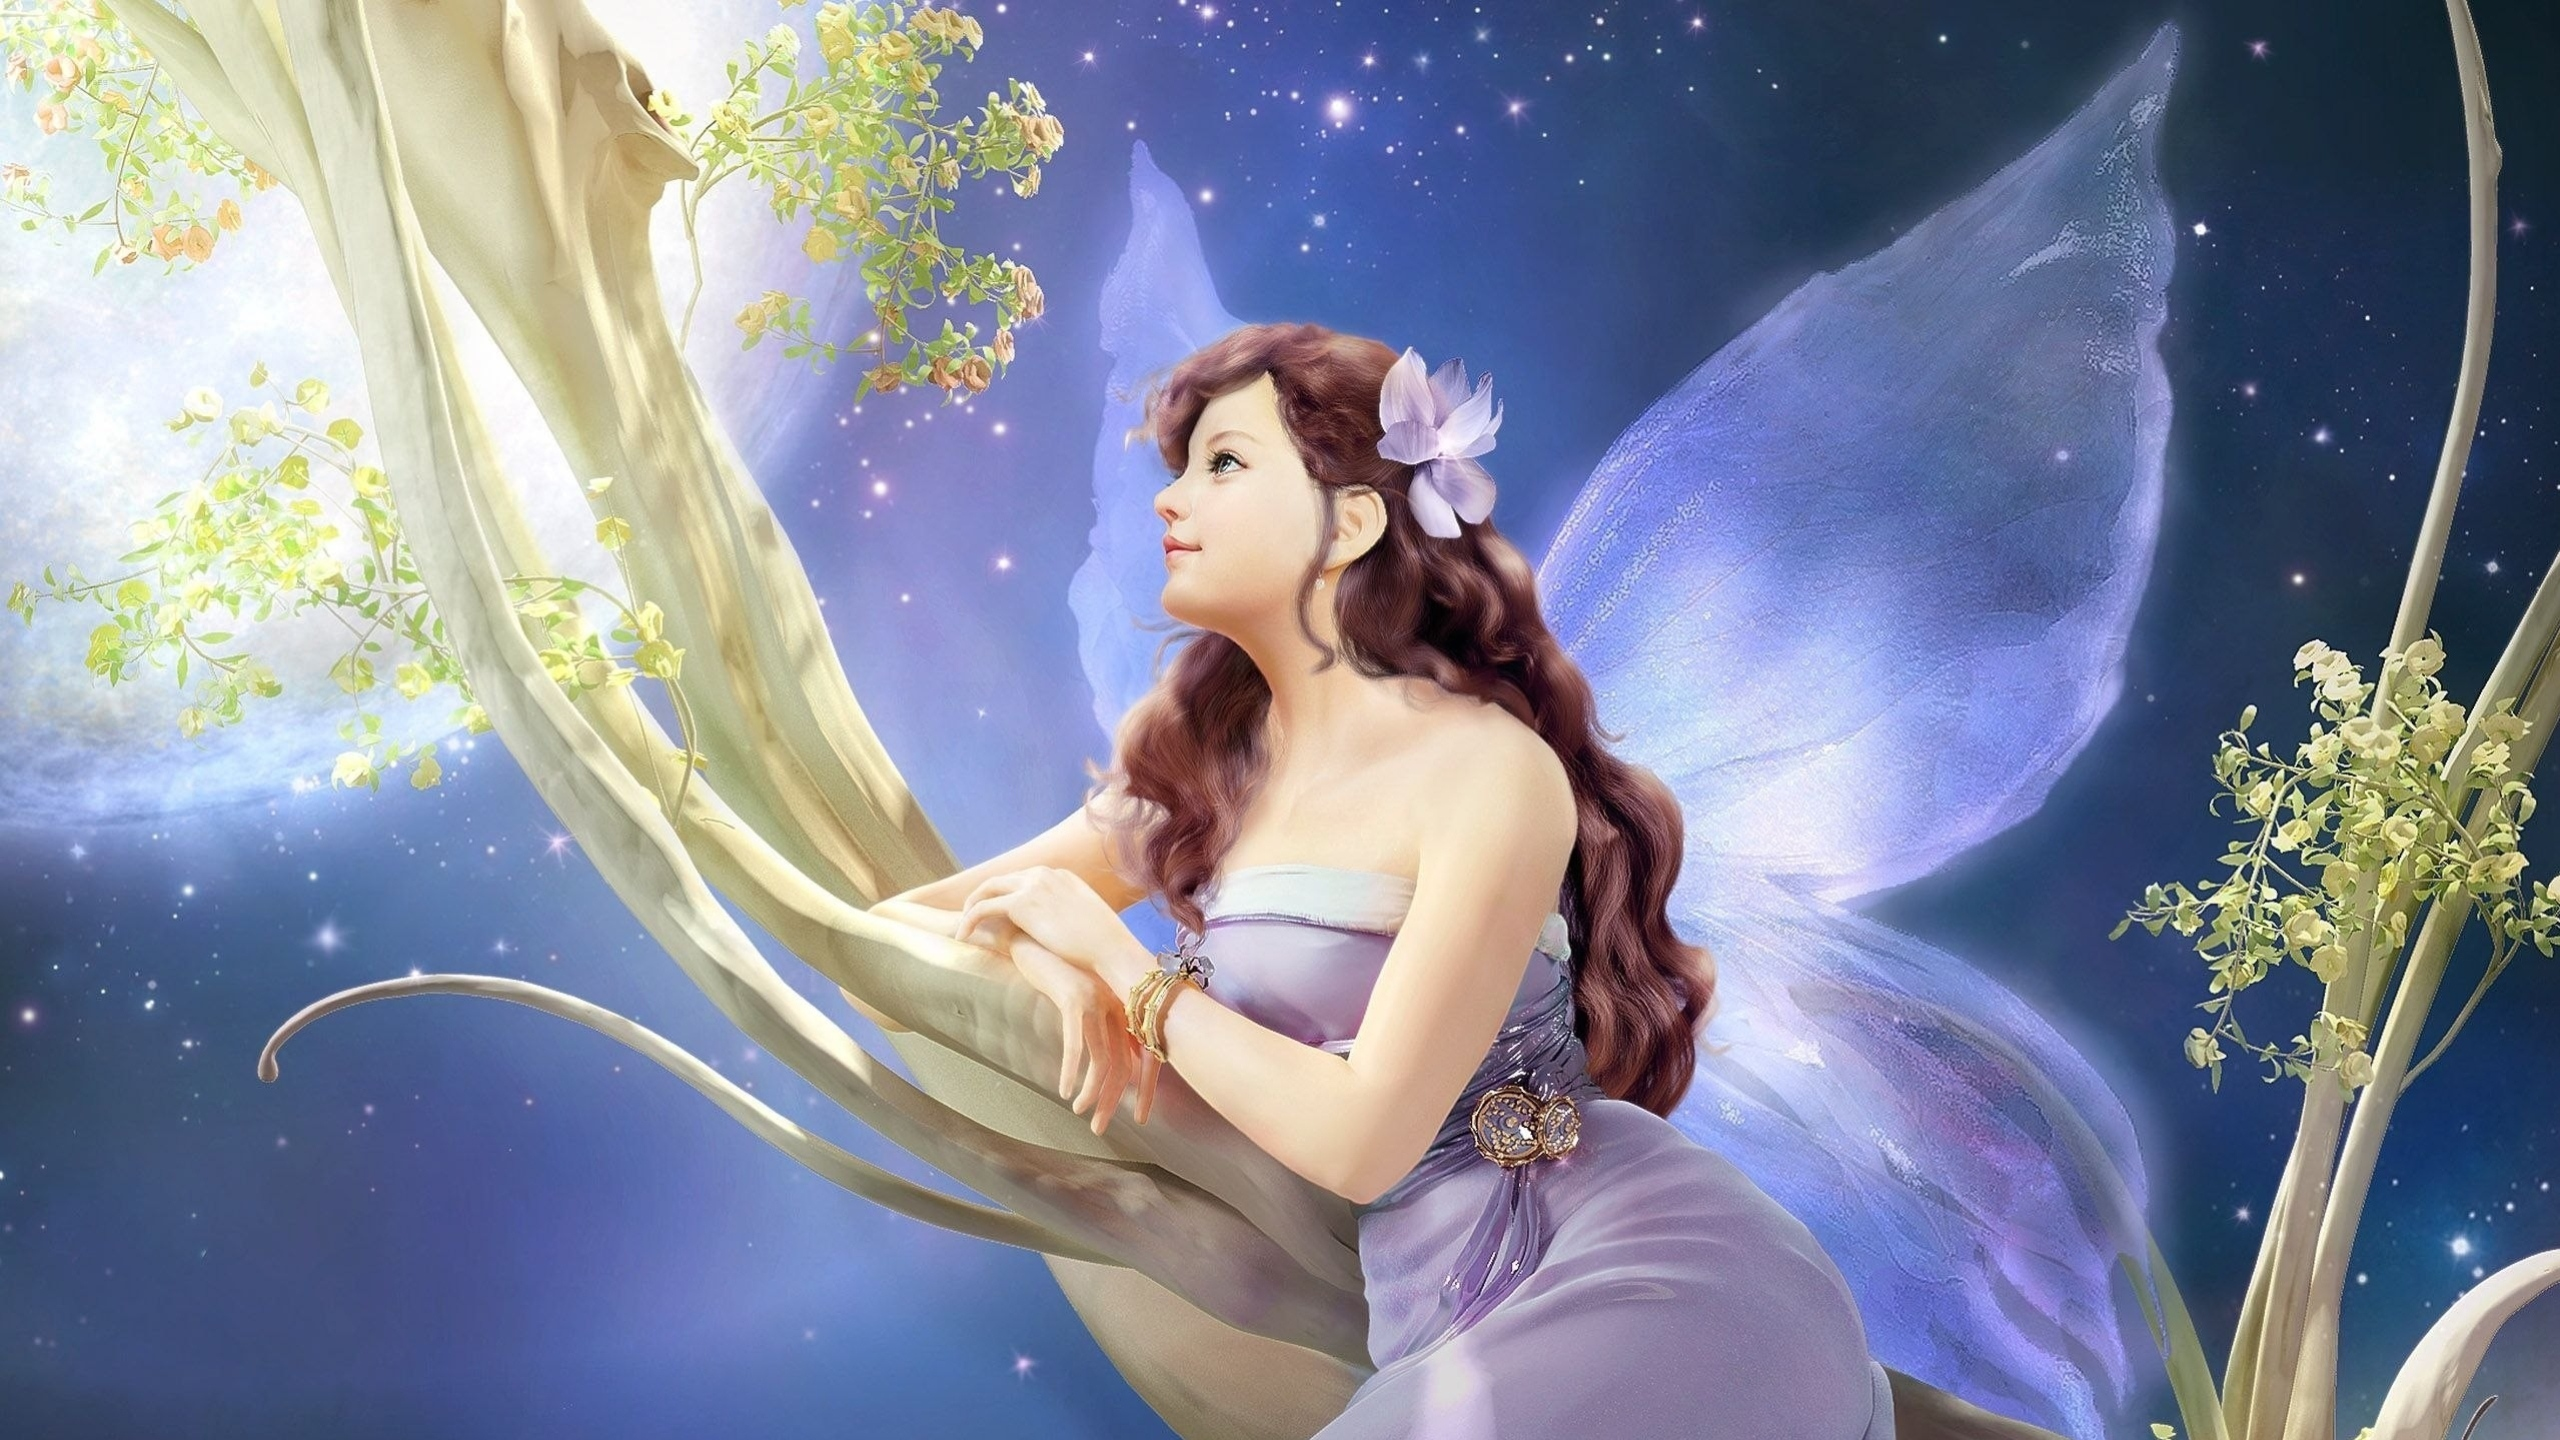 Fairy wallpapers pictures images fairy wallpaper fairy wallpaper fairy wallpaper voltagebd Image collections